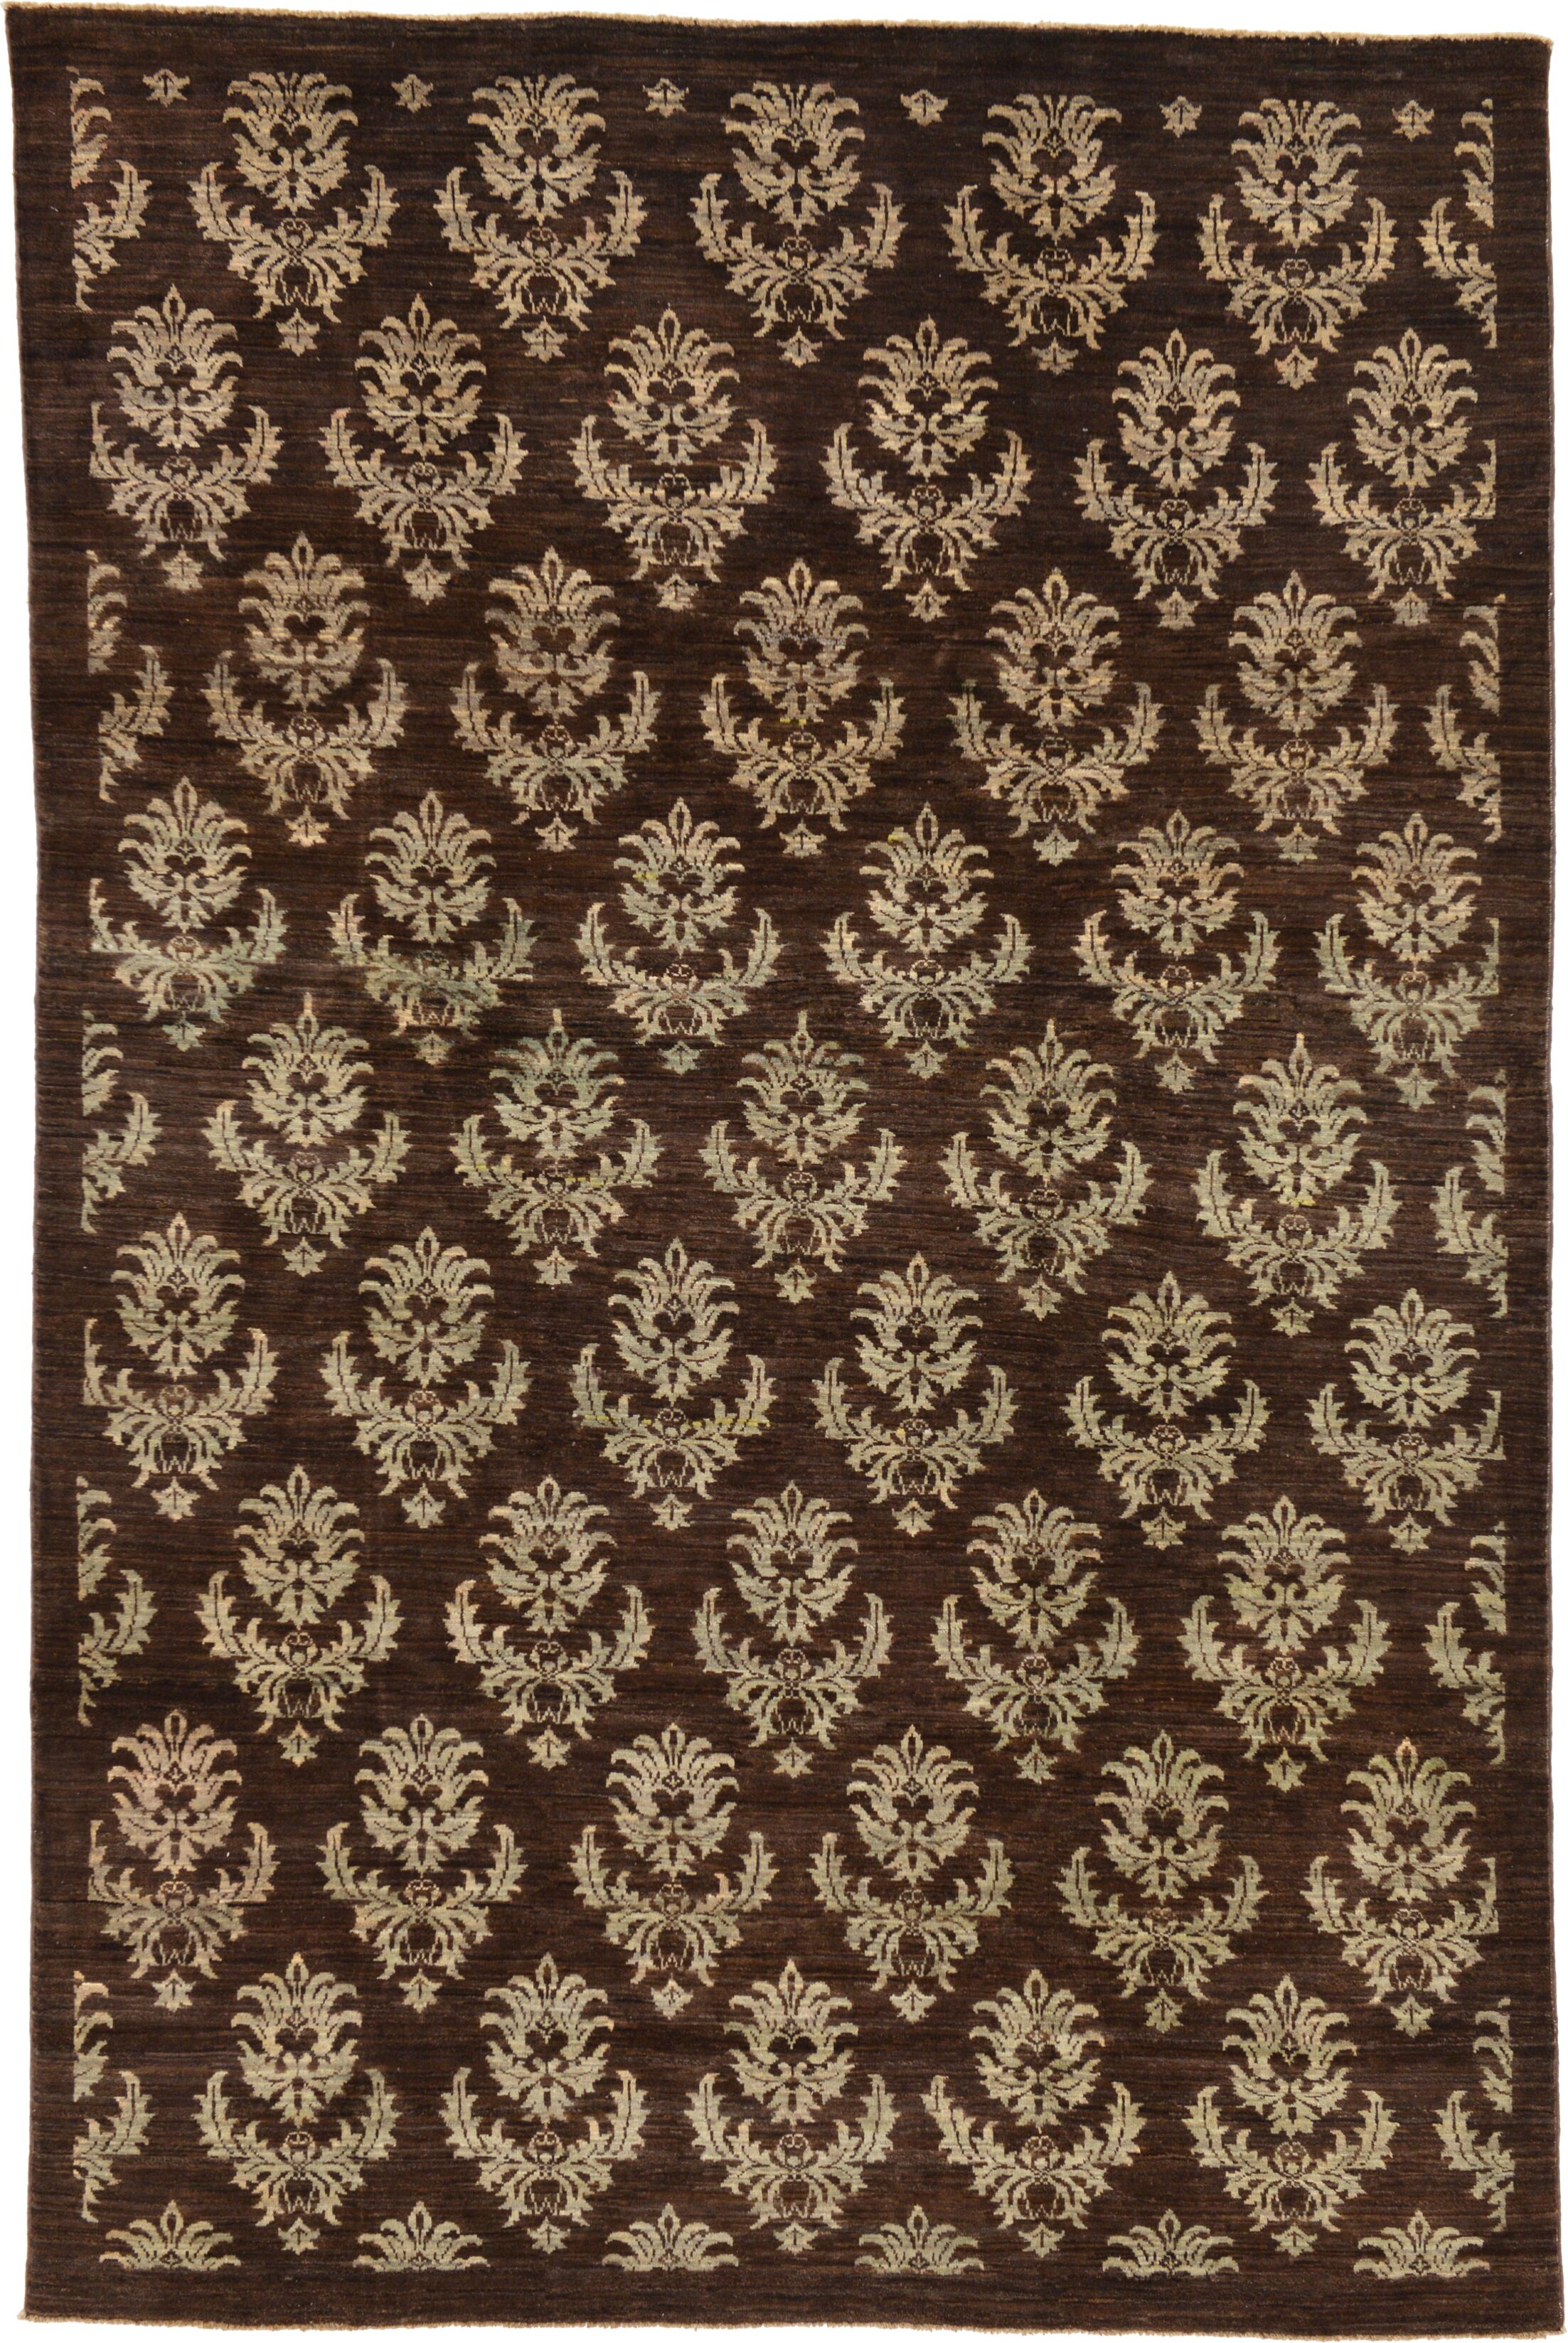 One-of-a-Kind Nash Hand-Knotted Wool Beige/Brown Area Rug